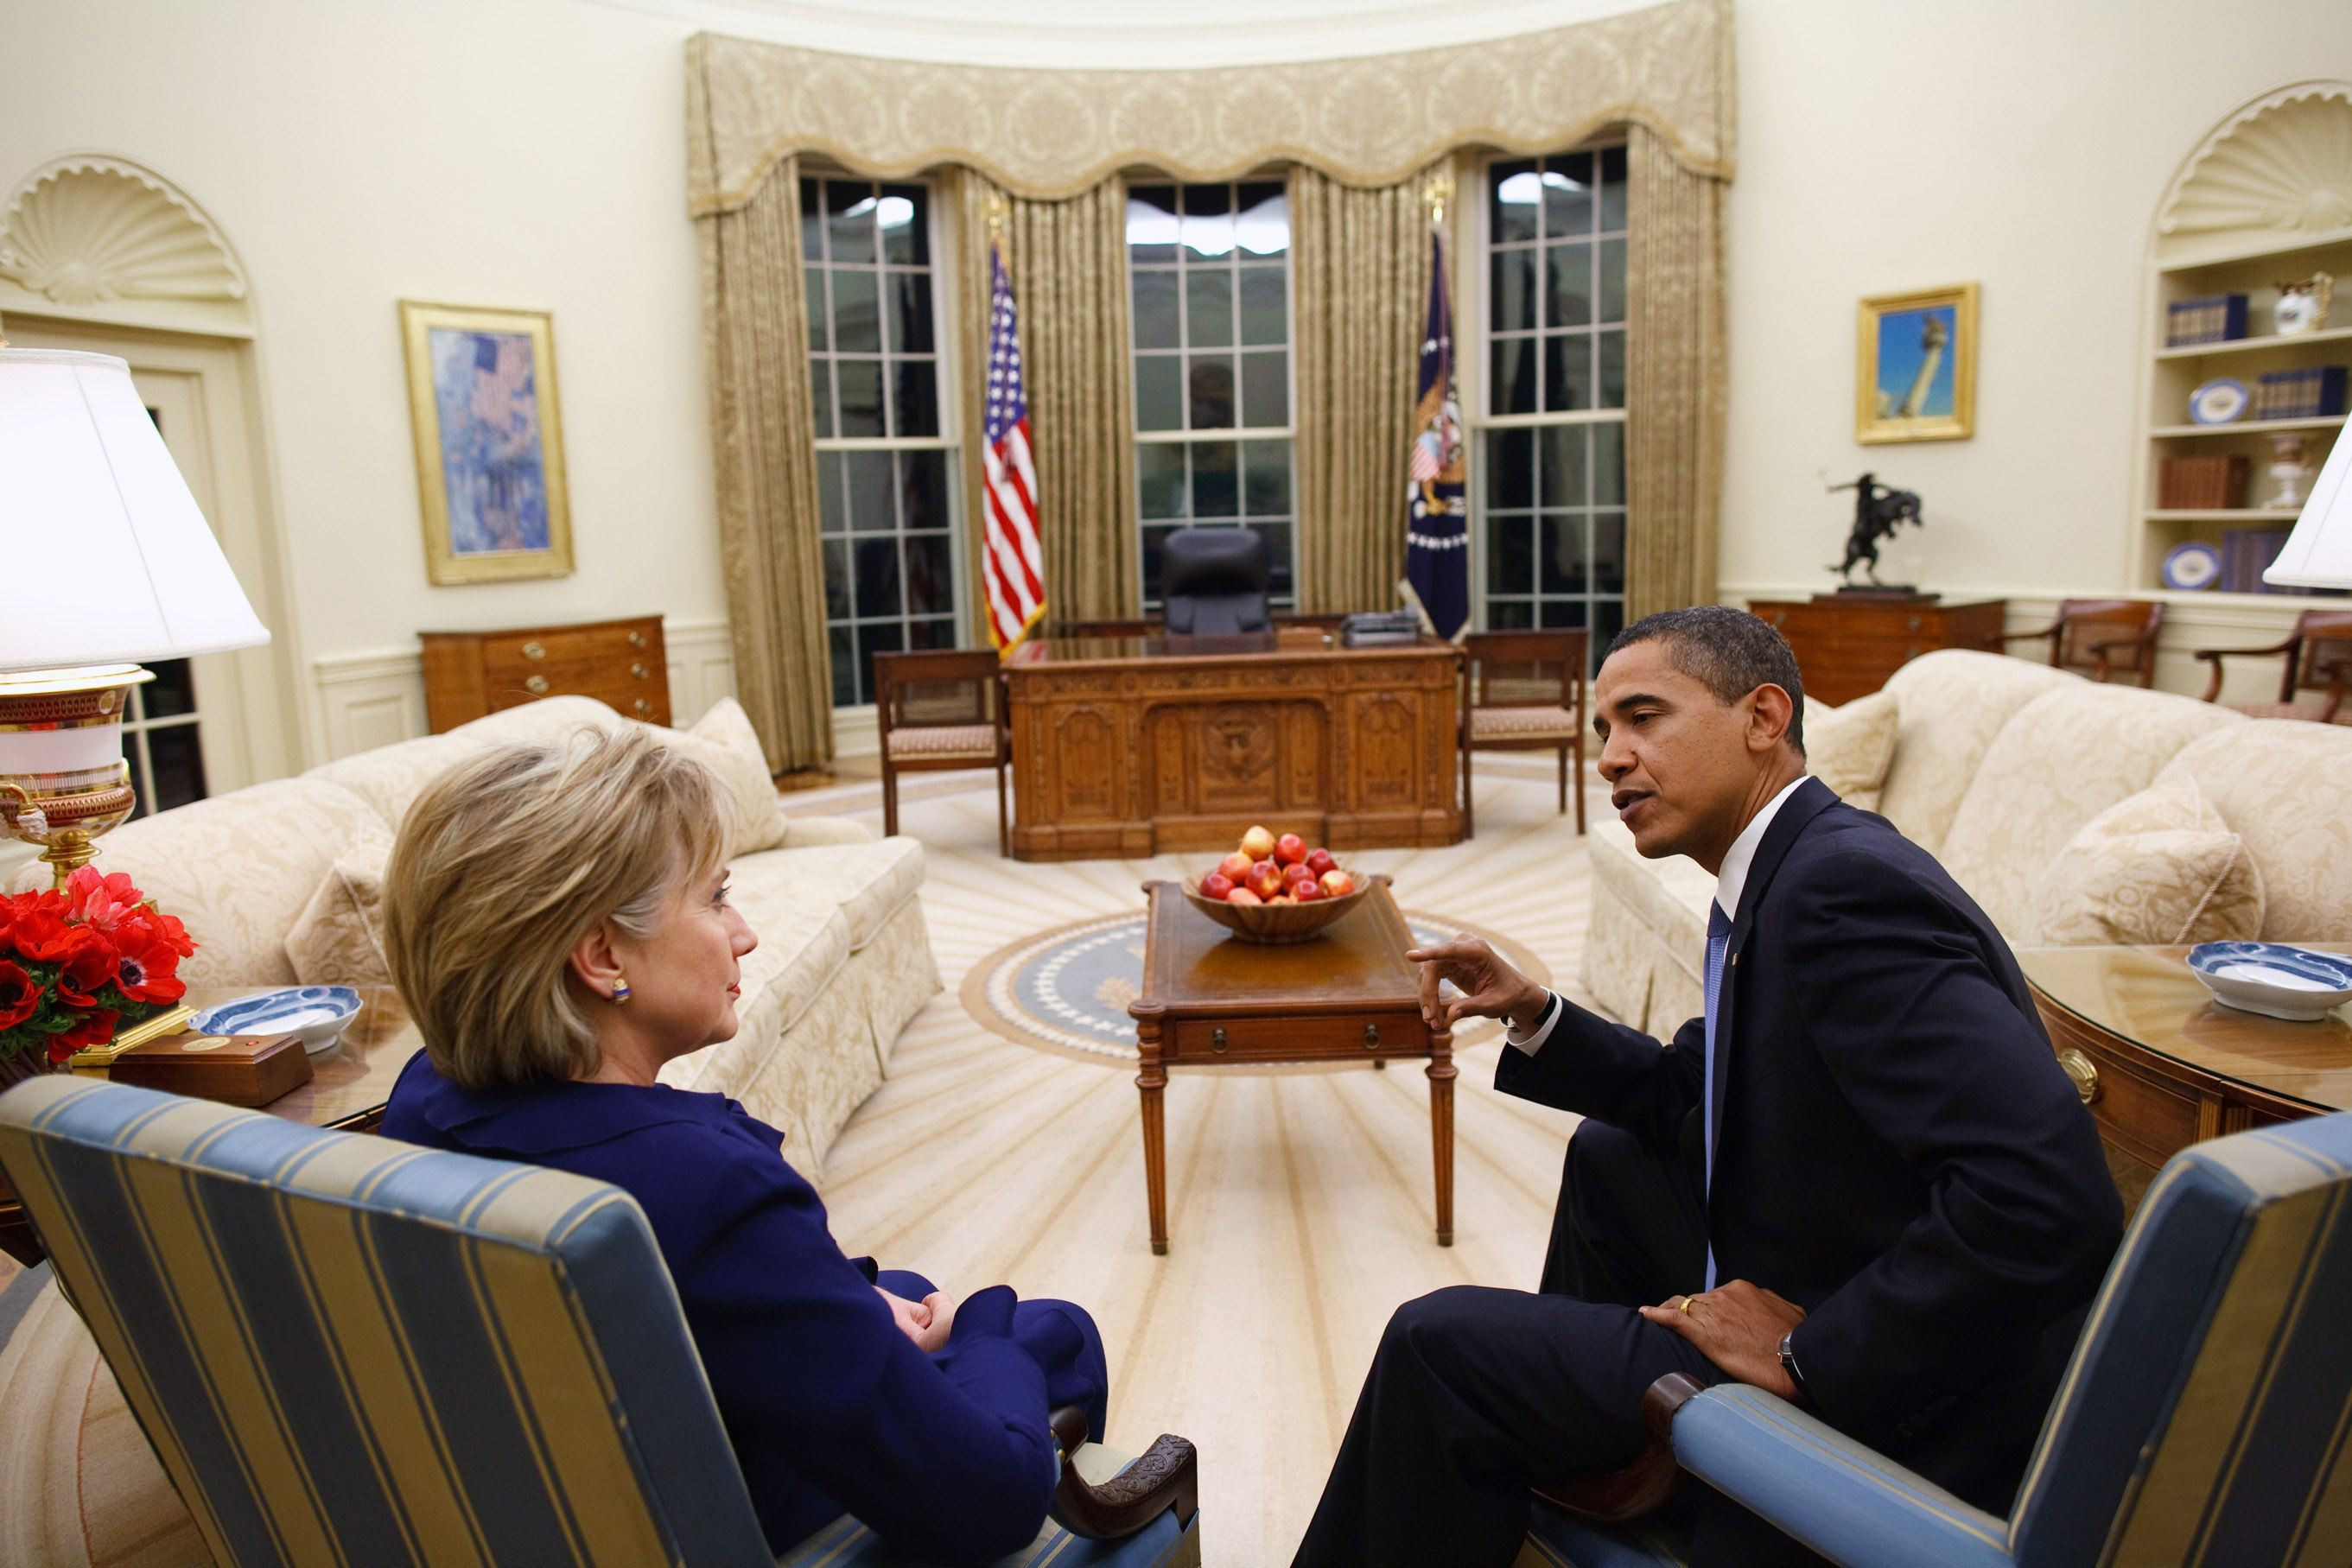 January 2009 In this photo released by the White House, President Barack Obama talks with Secretary of State Hillary Rodham Clinton shortly after she was confirmed and sworn in, at the Oval Office of the White House on Jan. 21, 2009 in Washington.